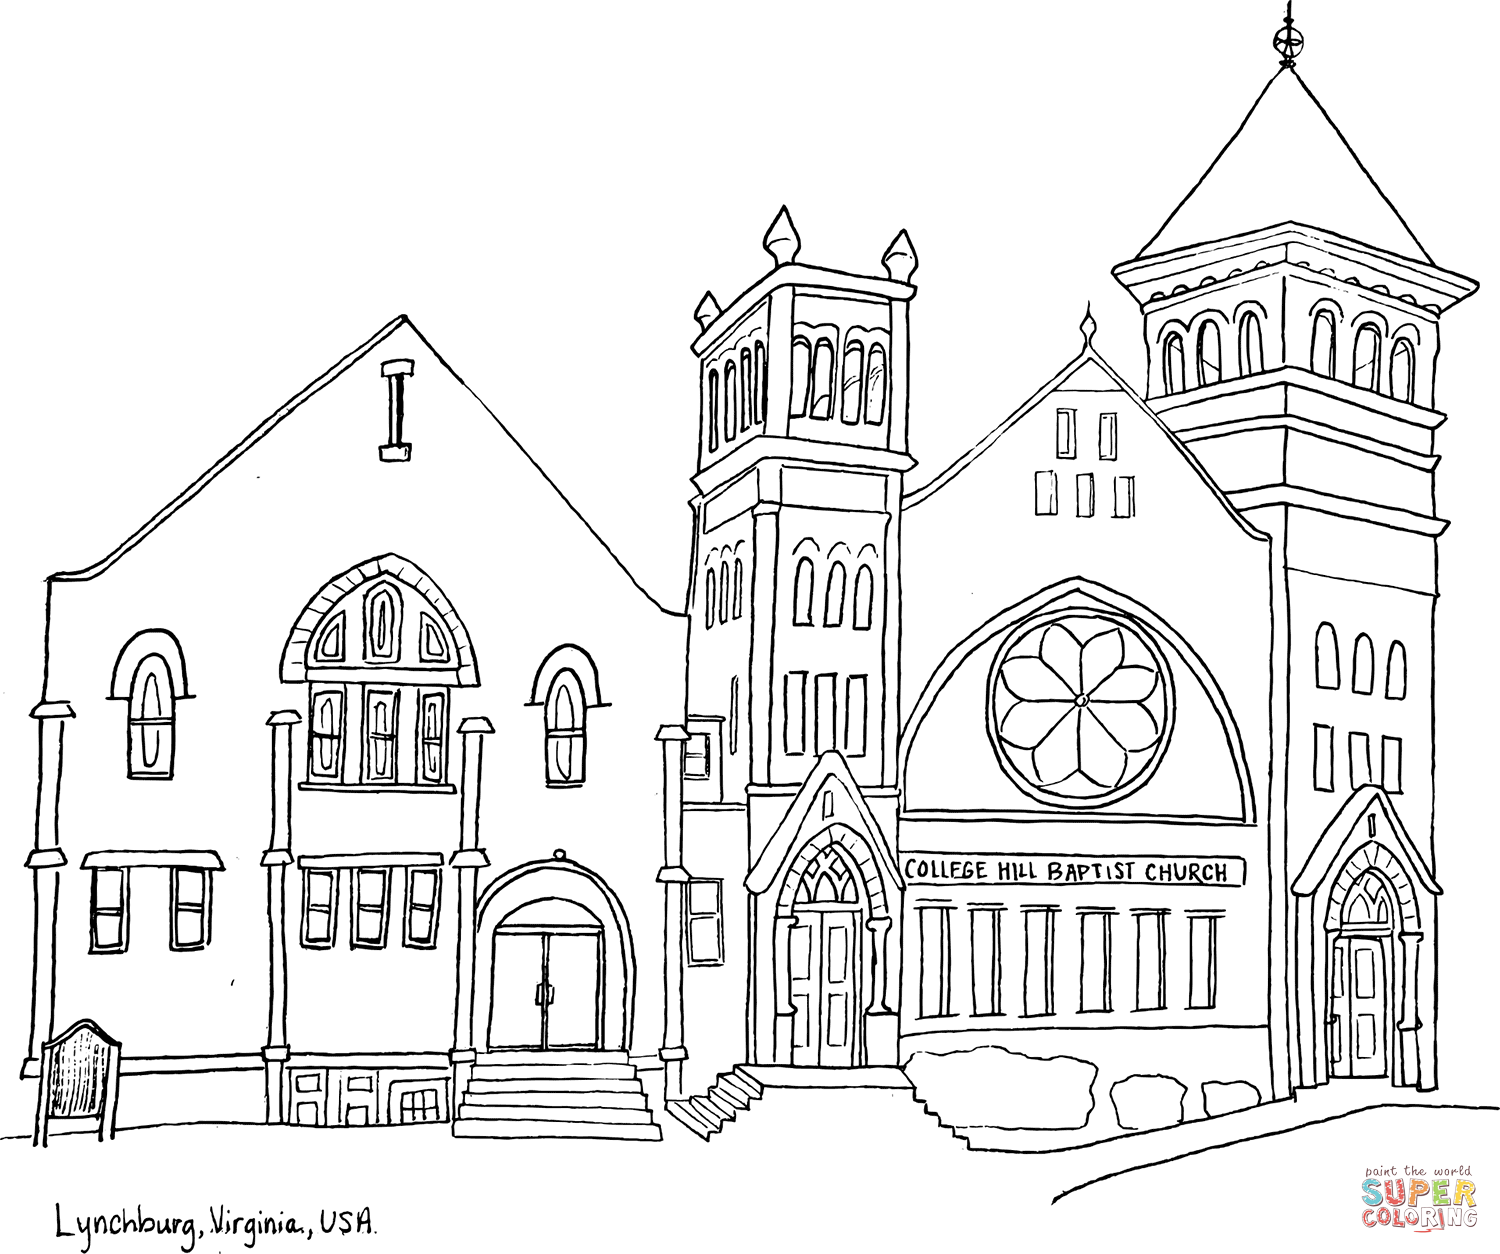 College Hill Baptist Church In Lynchburg Virginia Coloring